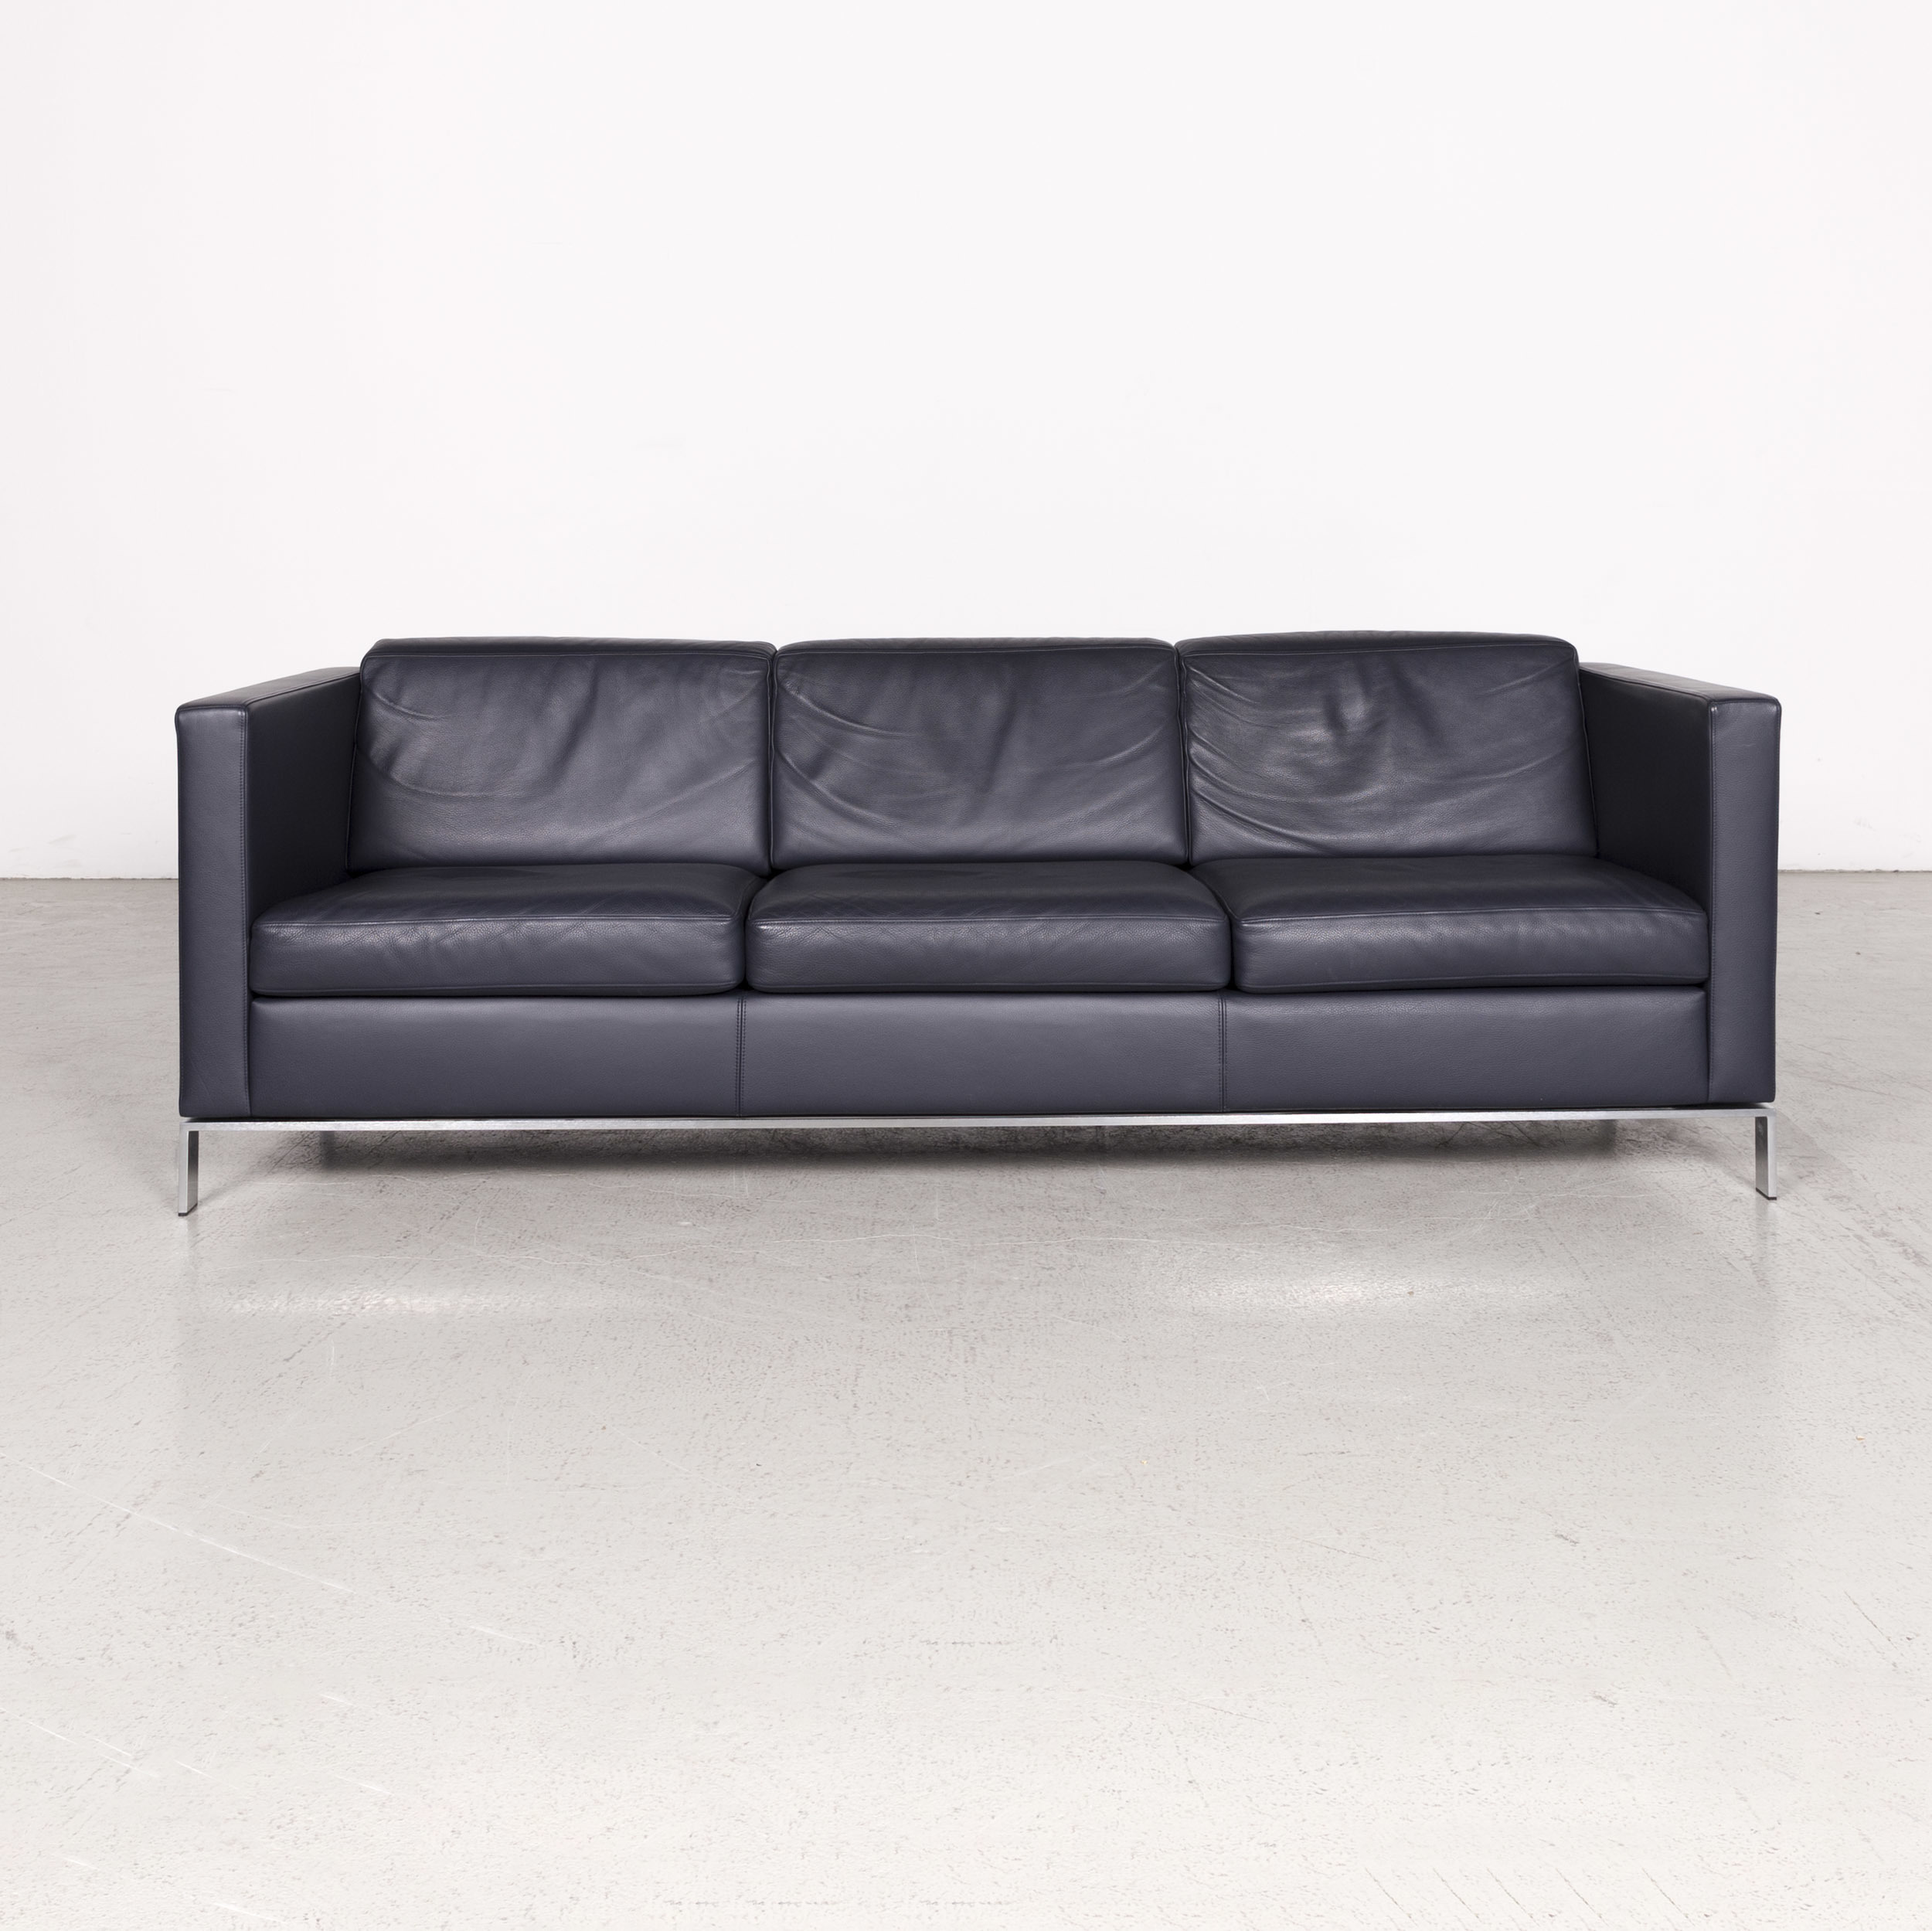 Brilliant Walter Knoll Foster Designer Leather Sofa Blue Real Leather Couch 7822 Bralicious Painted Fabric Chair Ideas Braliciousco